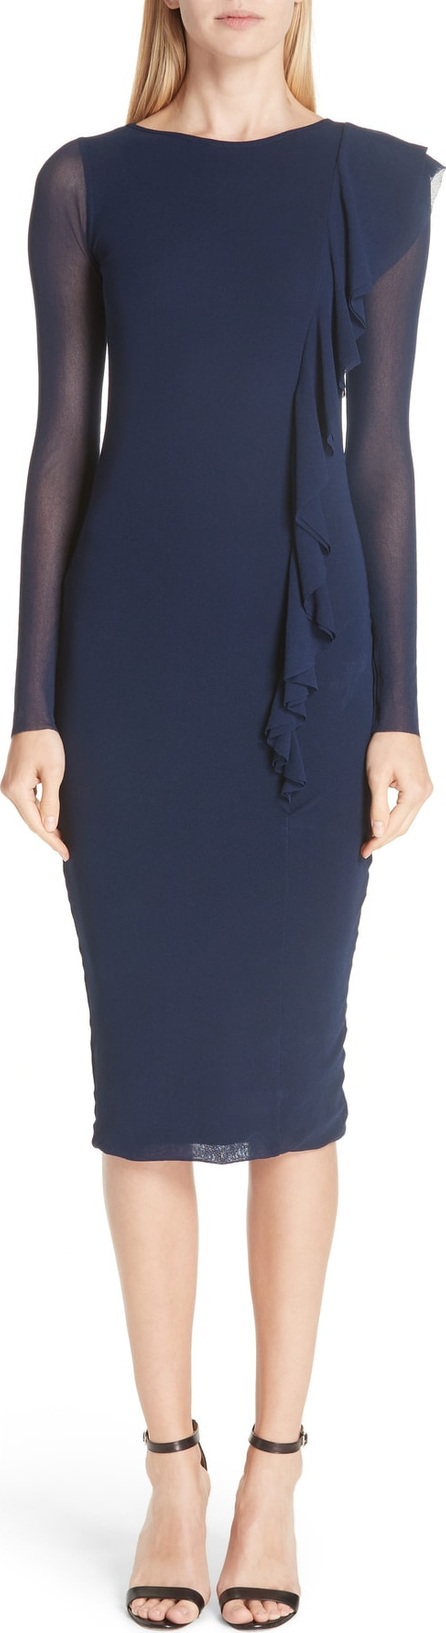 Fuzzi Asymmetrical Ruffle Long Sleeve Dress